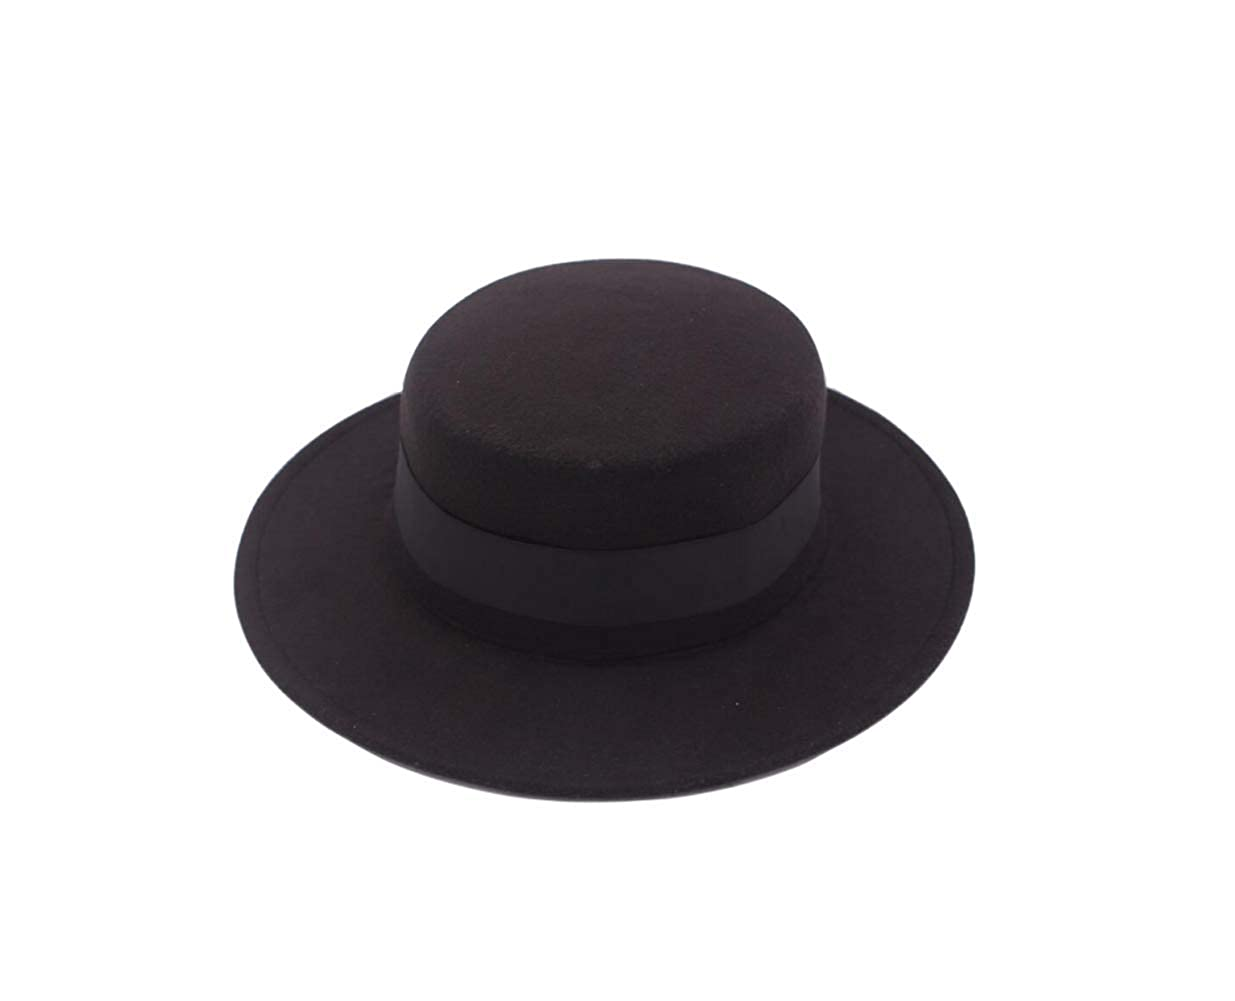 ASTRQLE Classic Black Fashion Fedora Flat Hat Elegant Jazz Hats Brim Church Derby Cap